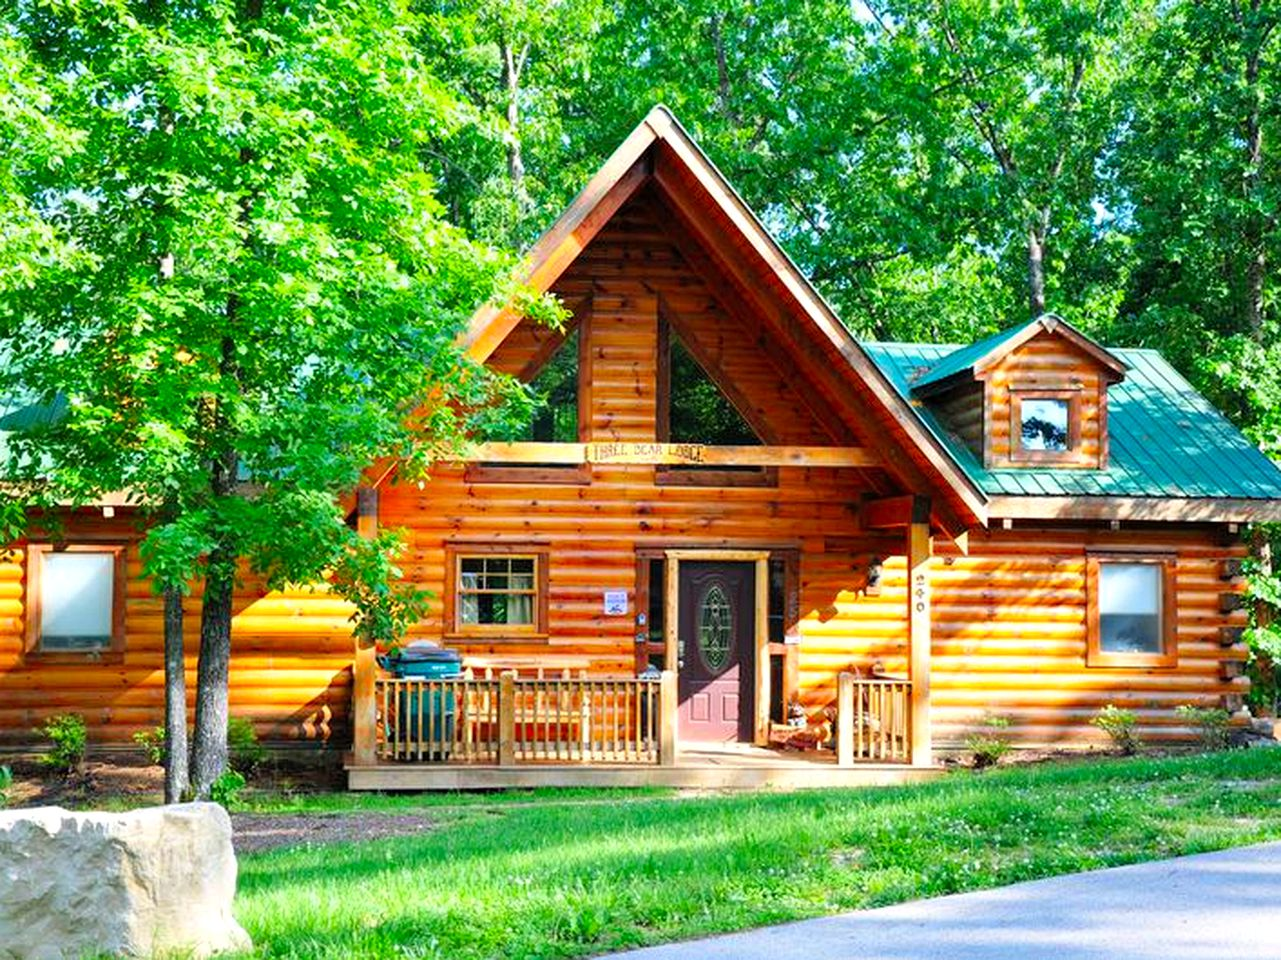 Deluxe Log Cabin Rental with Hot Tub near the Ozarks (Ridgedale, Missouri, United States)